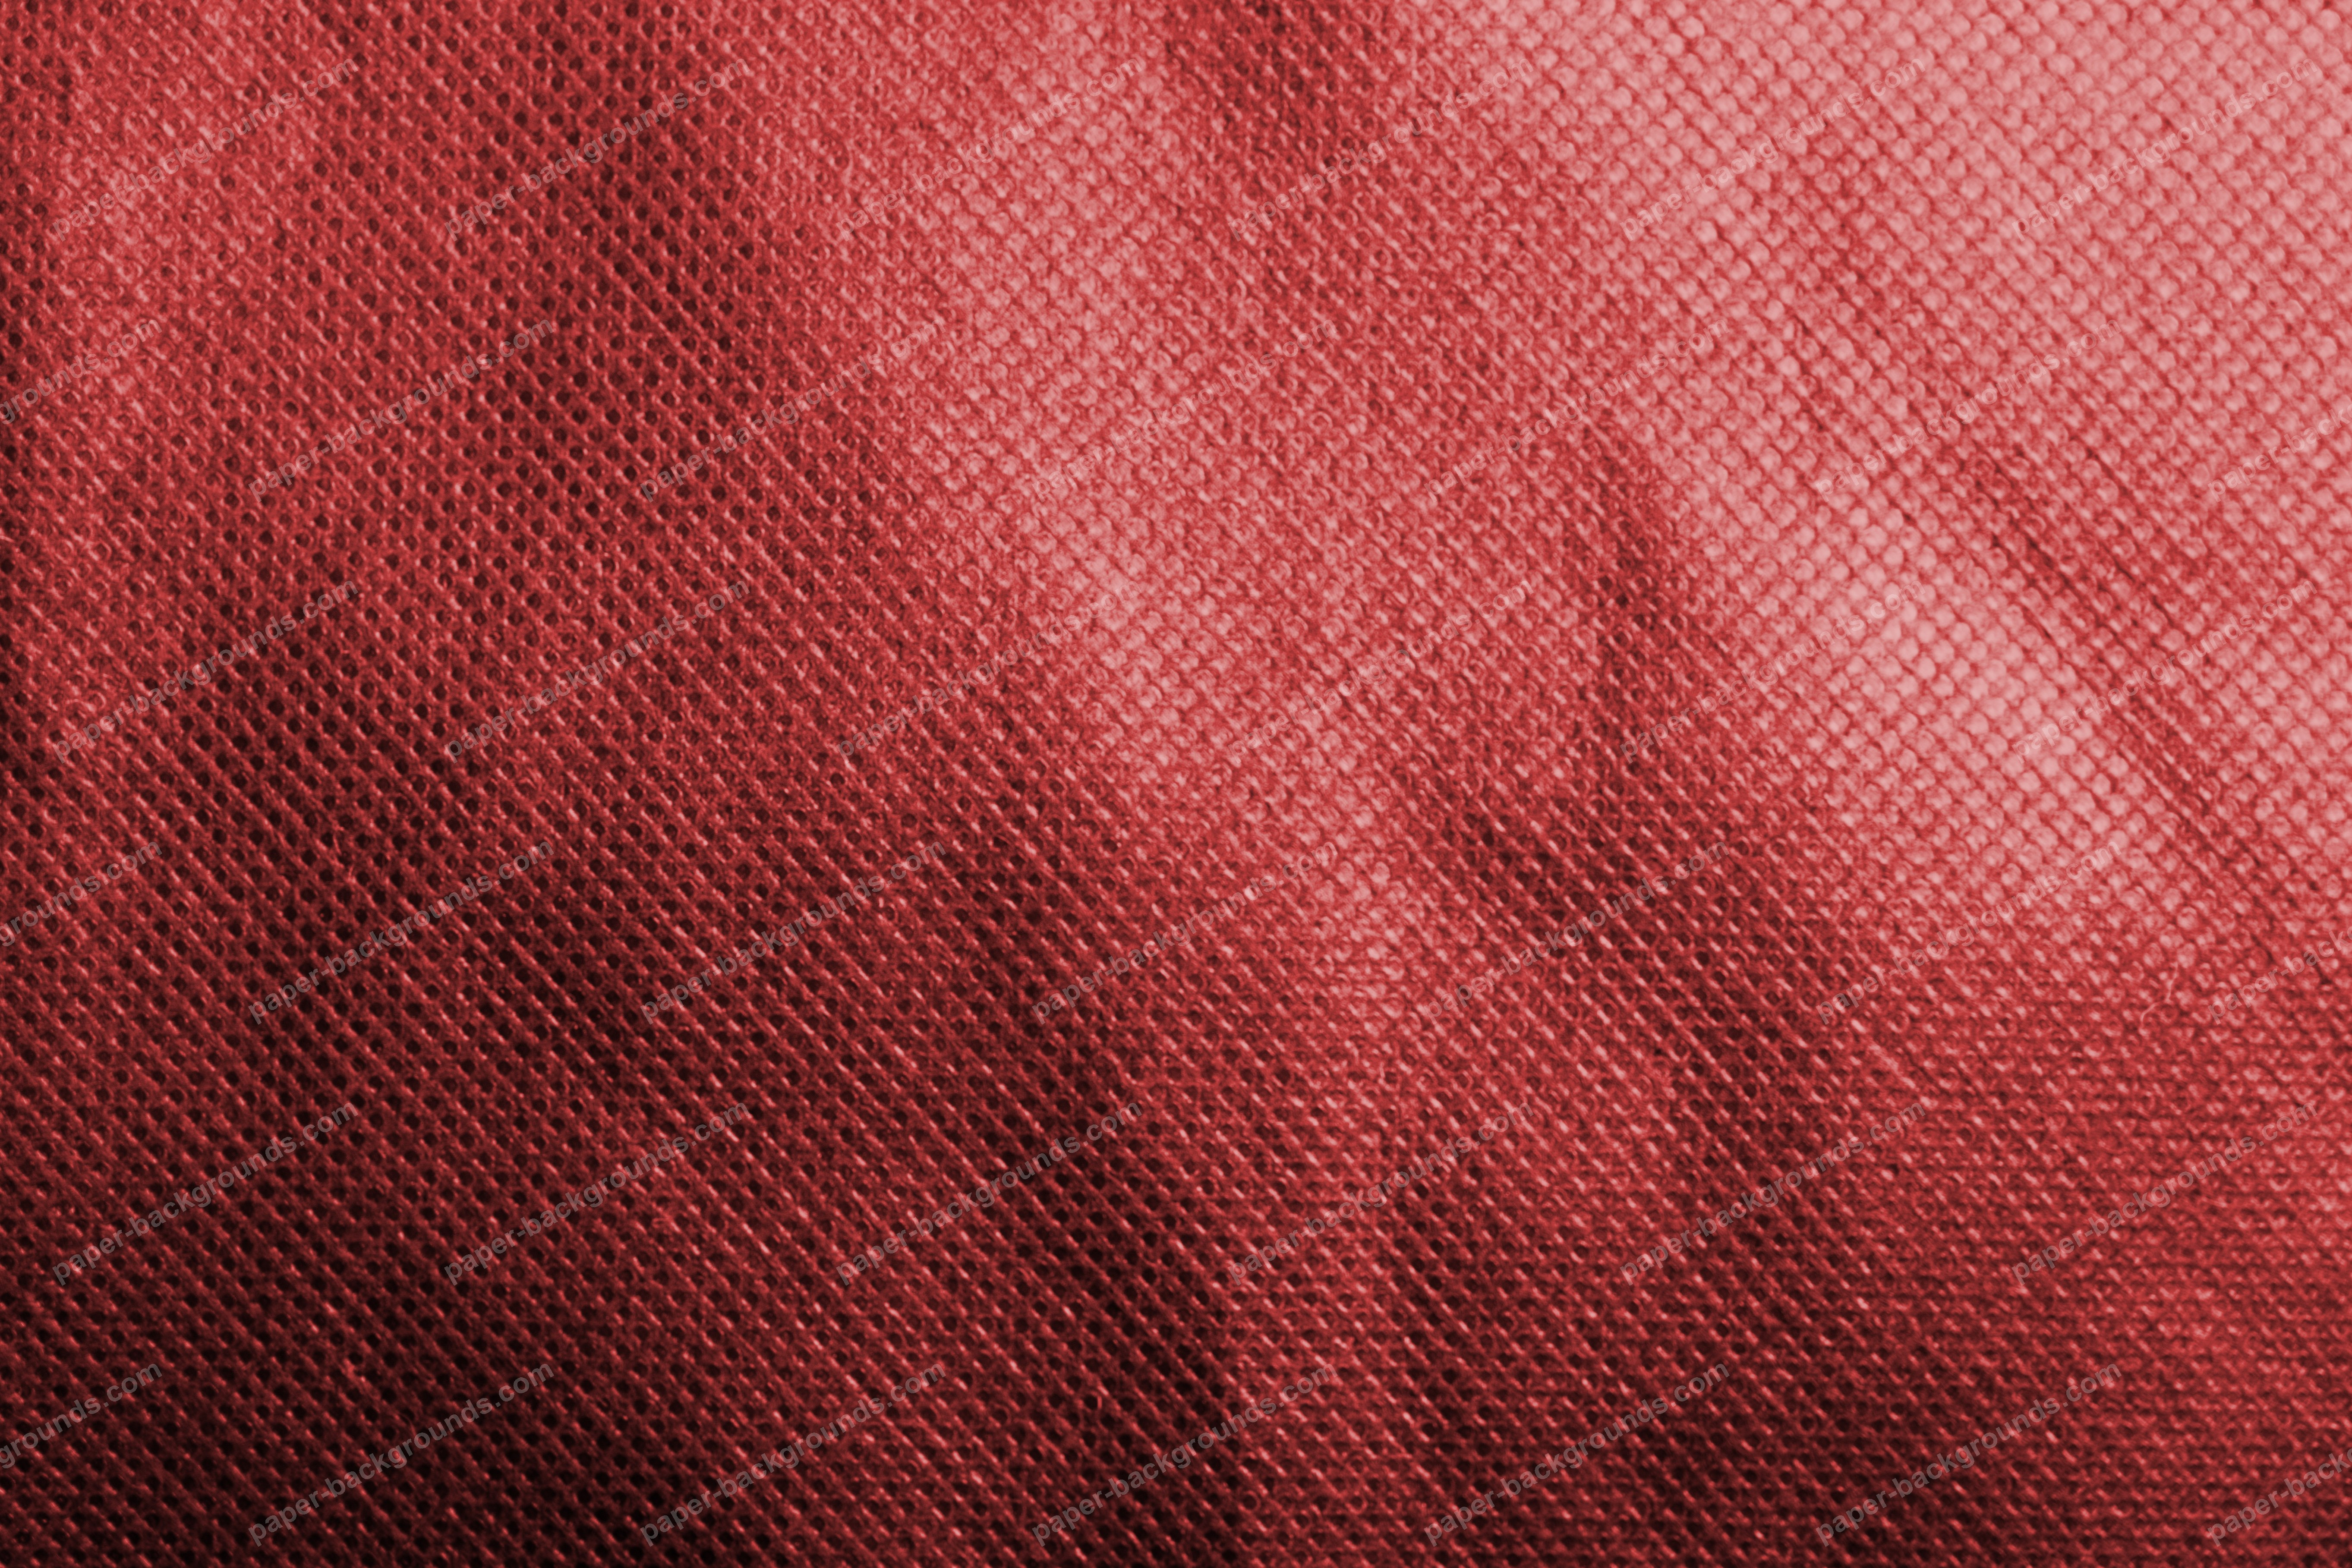 Red fabric pattern for Fabric material